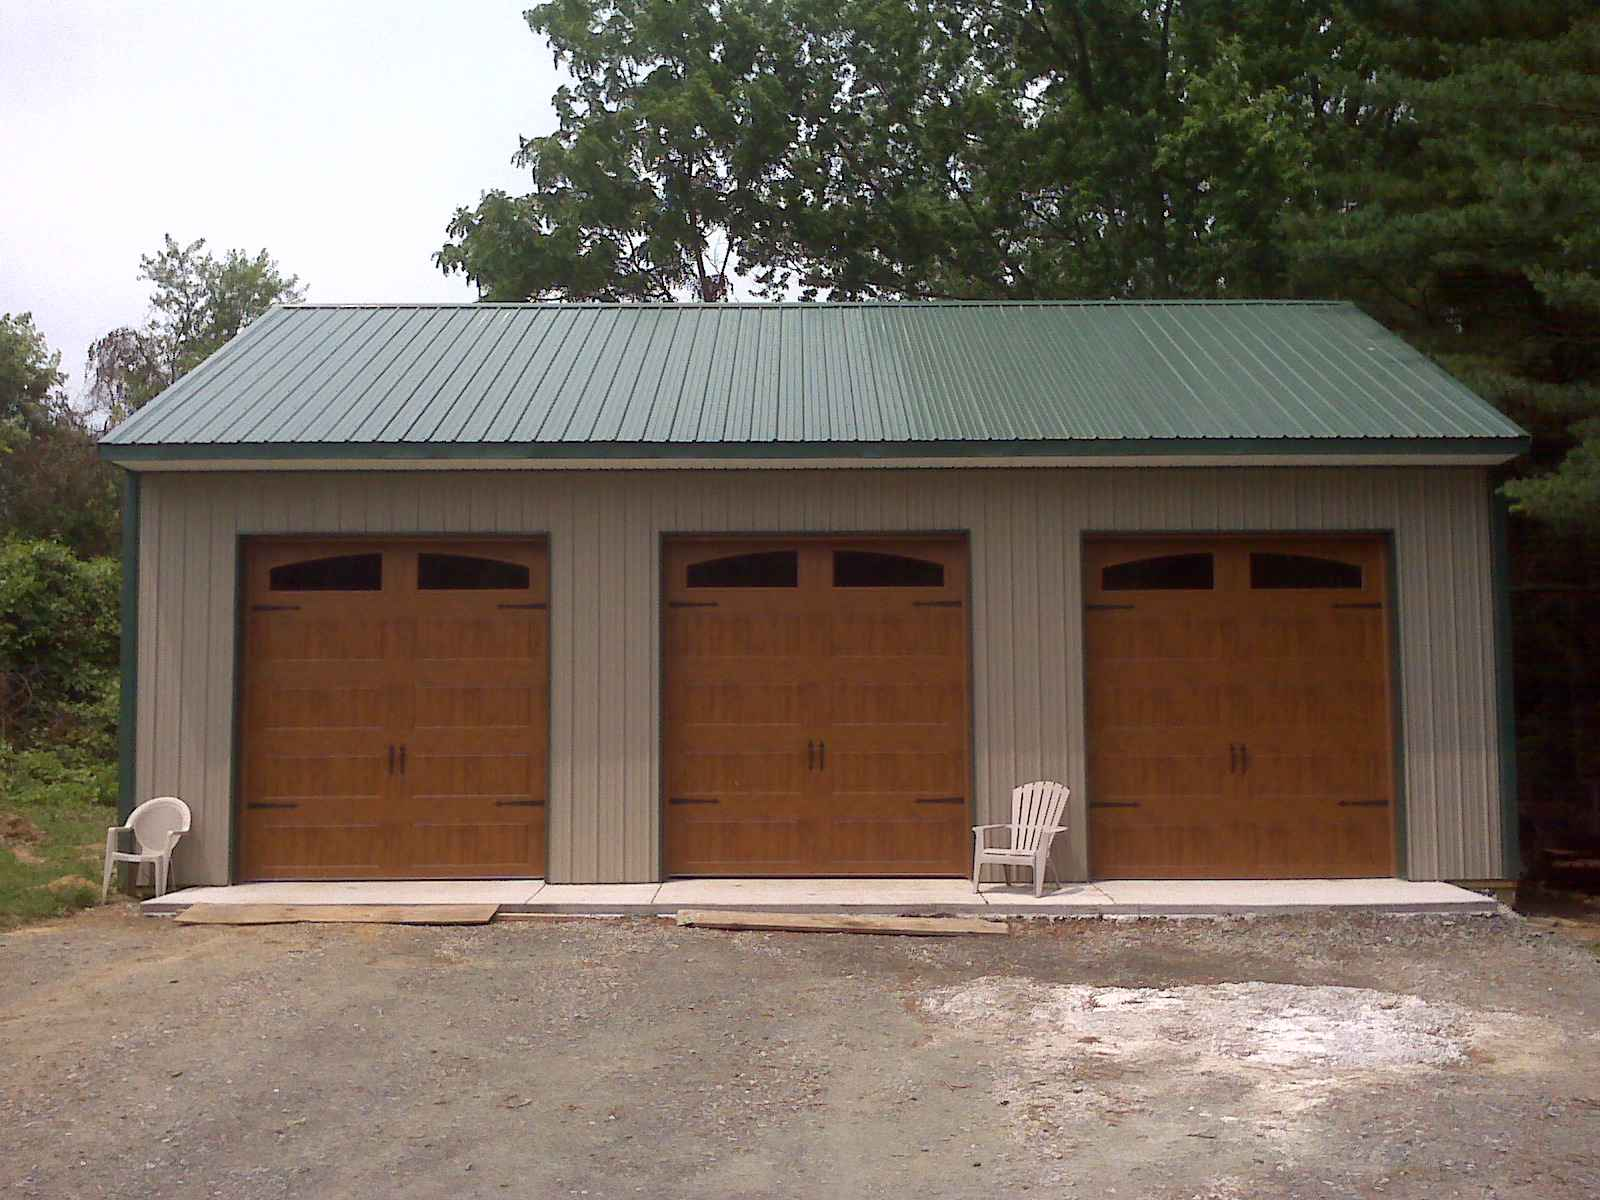 1200 #653E28 Woodgrain Stylish Garage Door Clopay Coachman Affordable Garage Doors  save image Stylish Garage Doors 37871600